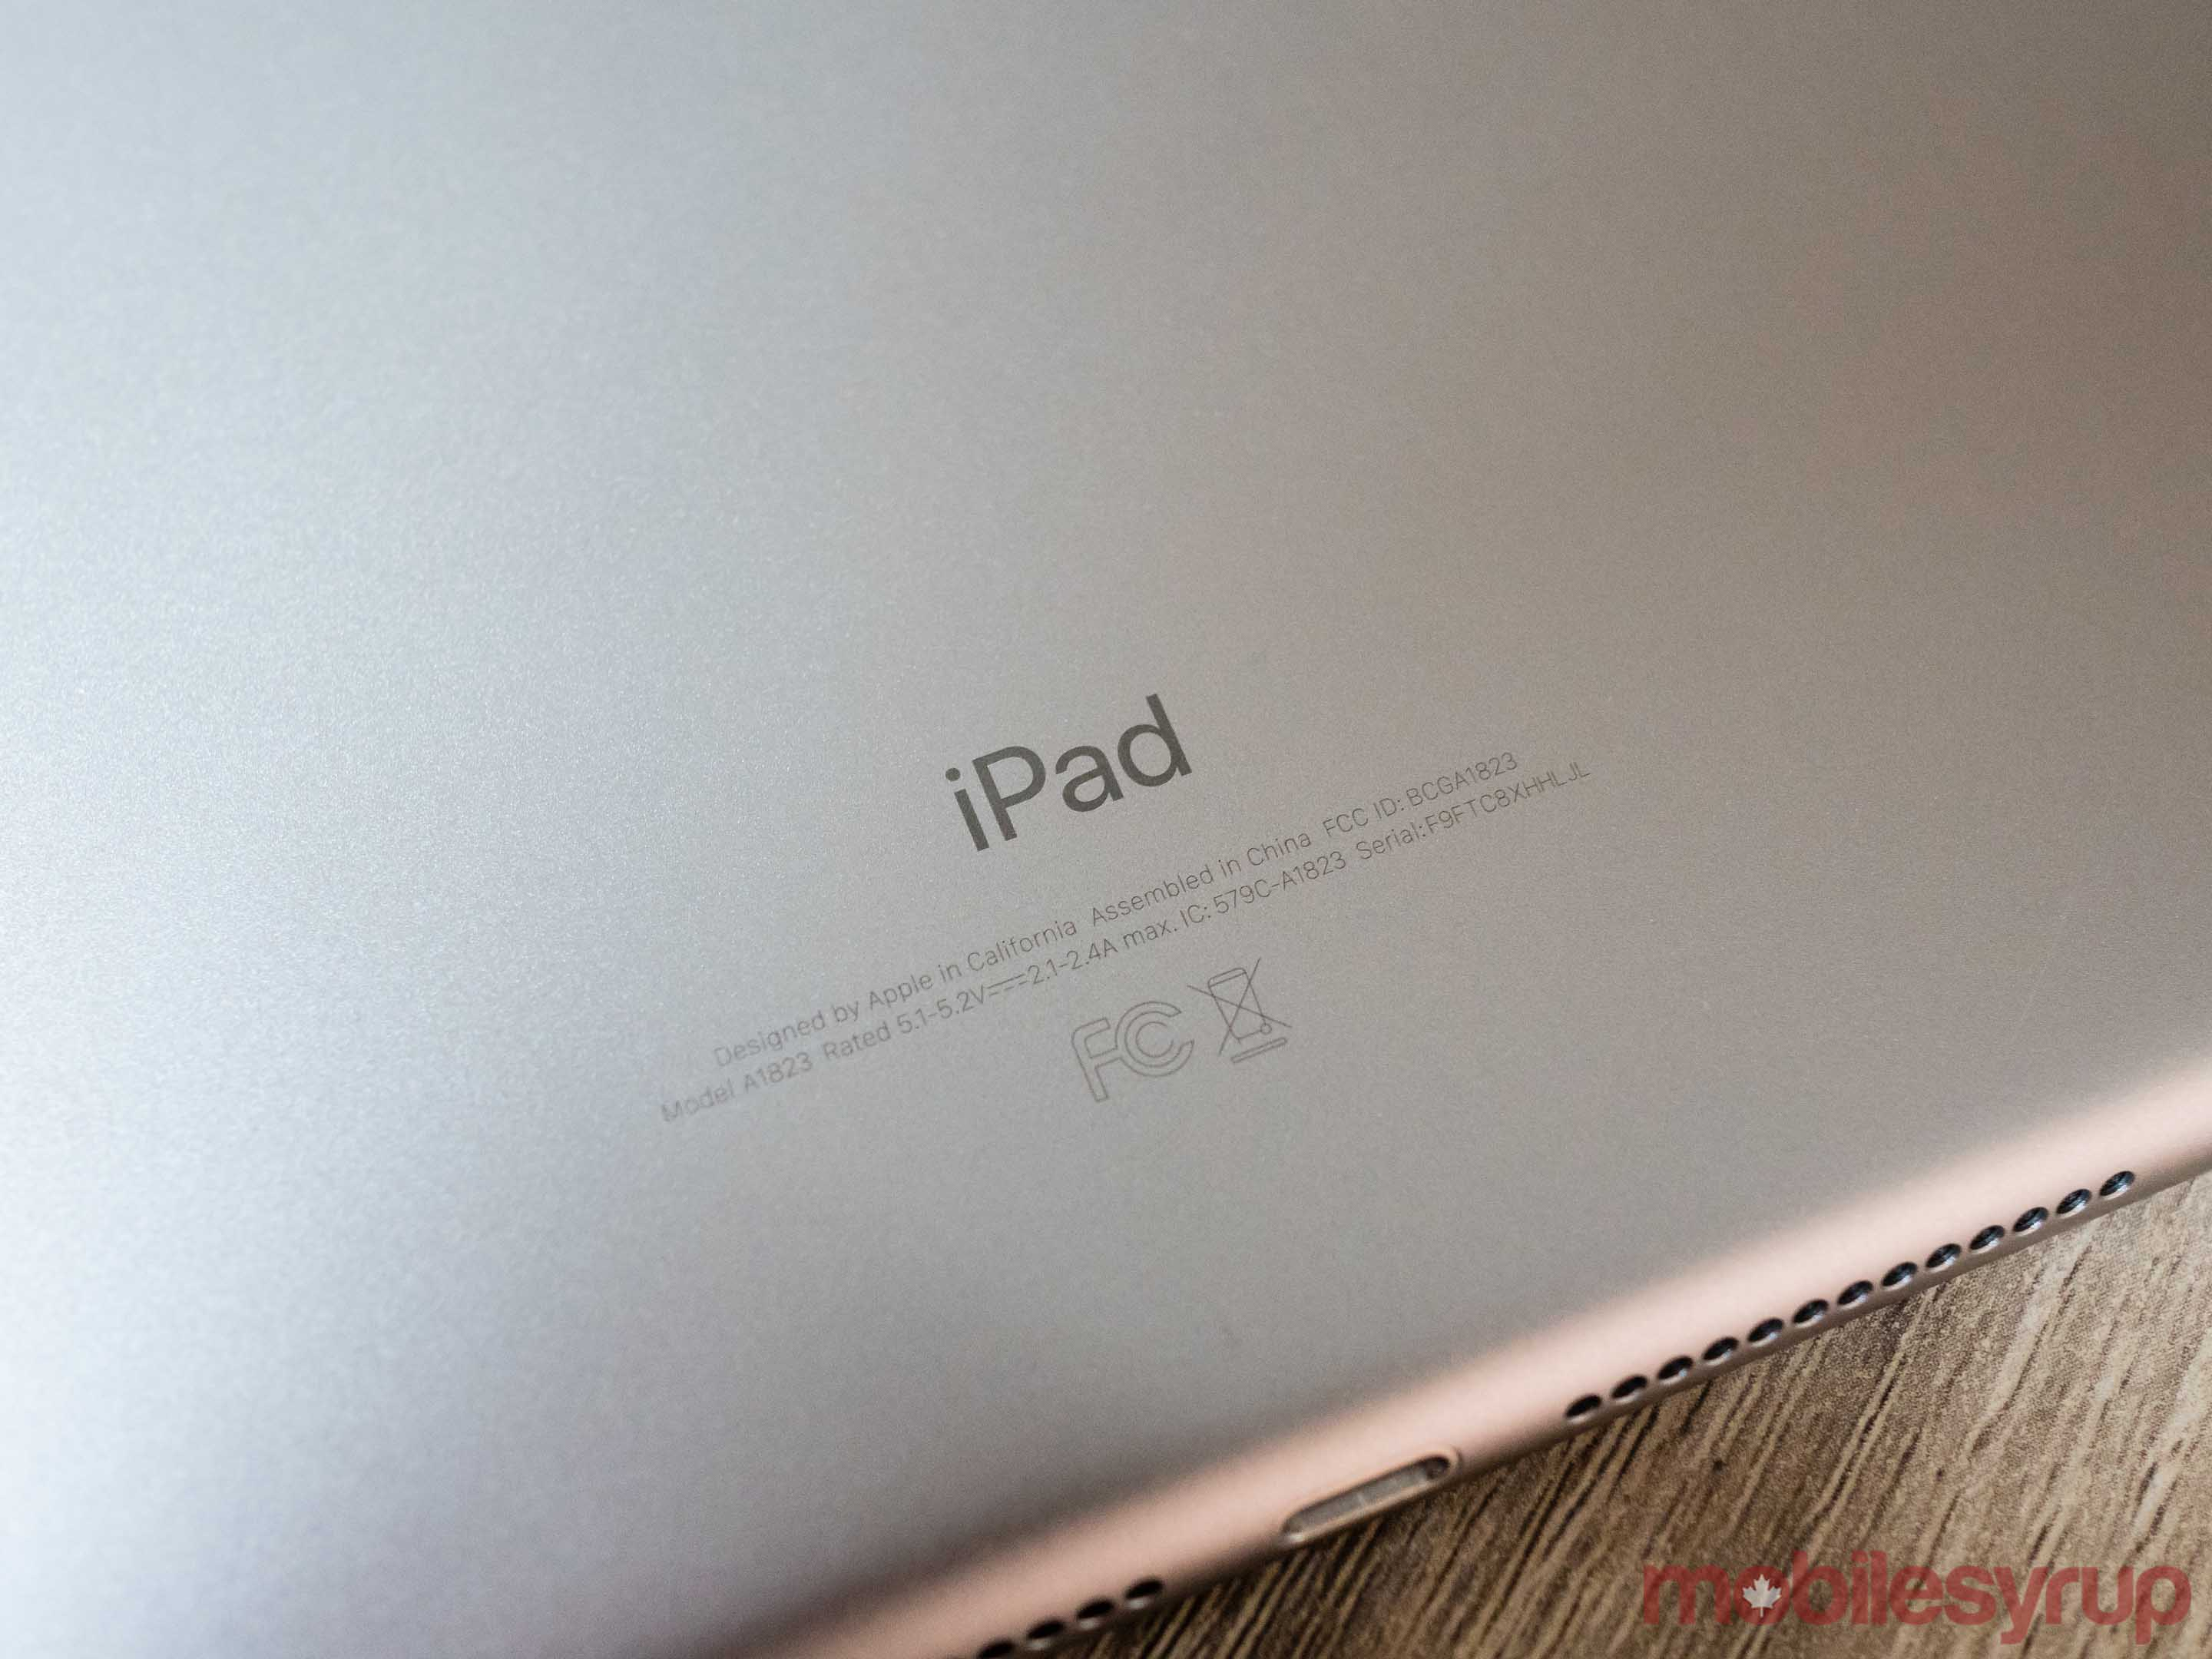 Back of 2017 Apple iPad